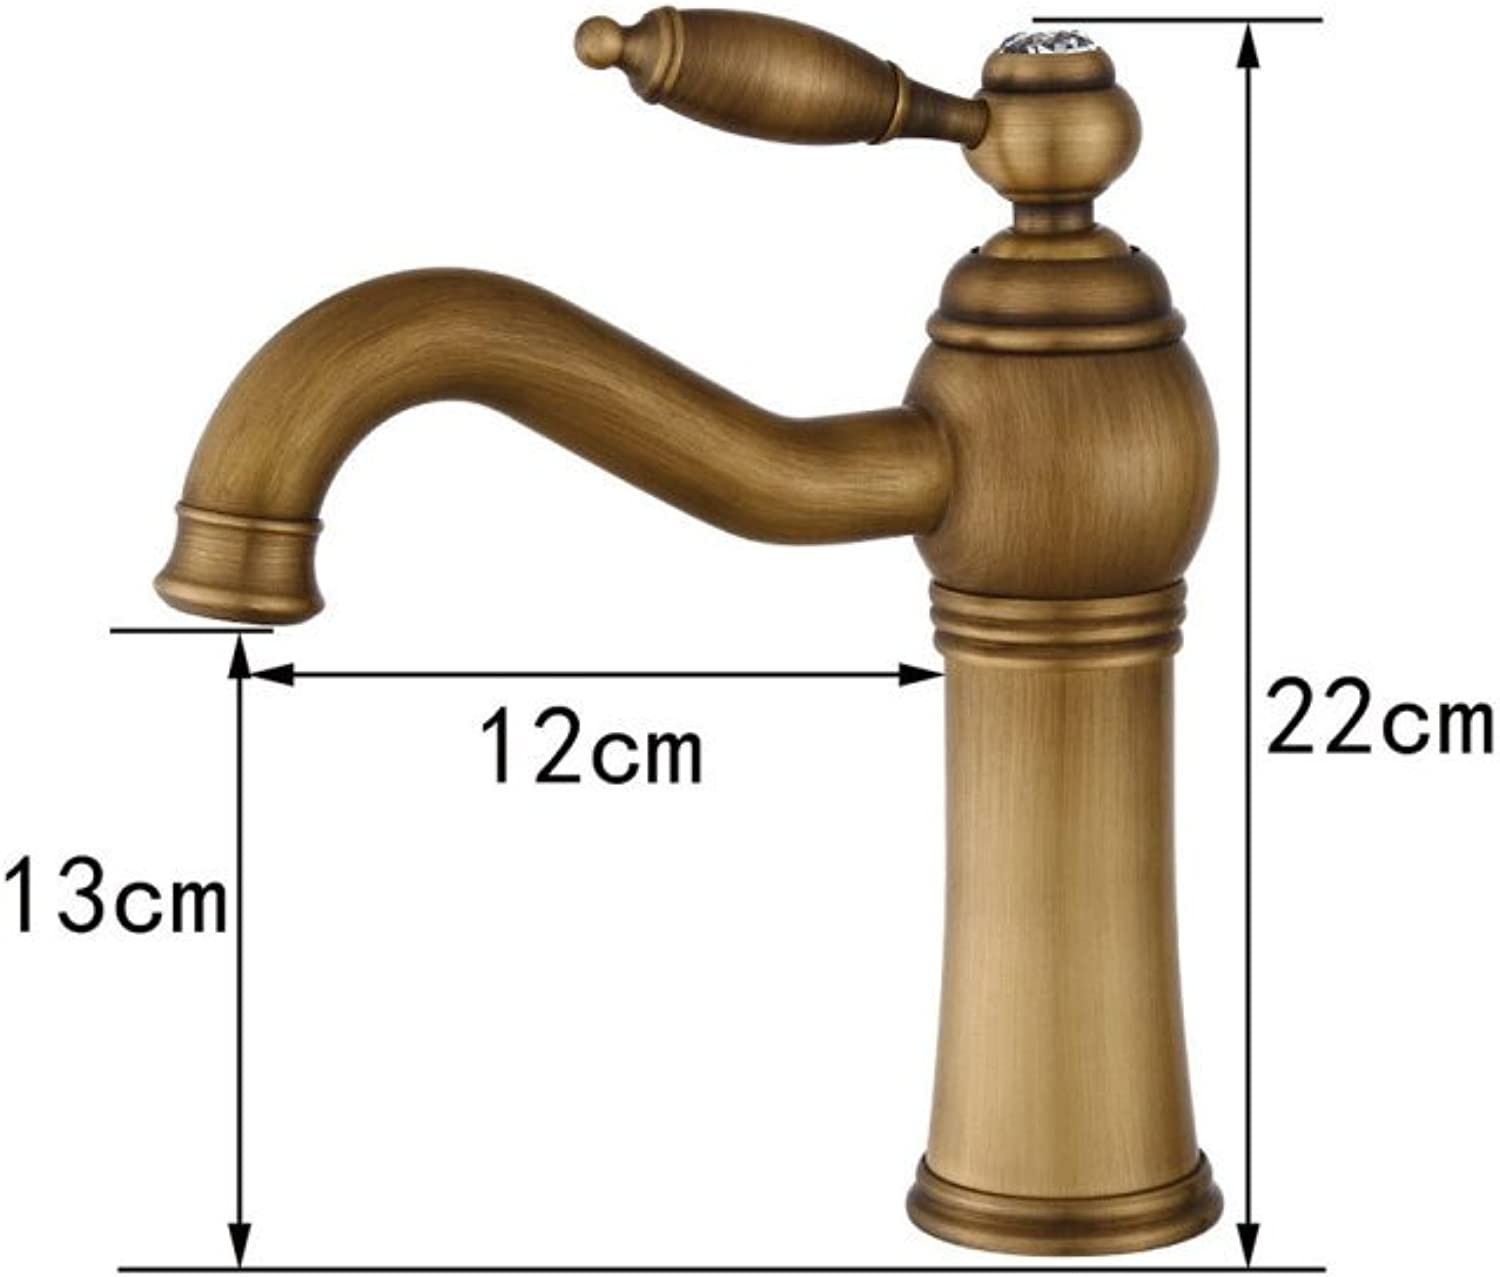 GZF Faucet European antique washbasin faucet retro hot and cold faucet bathroom sink swivel faucet